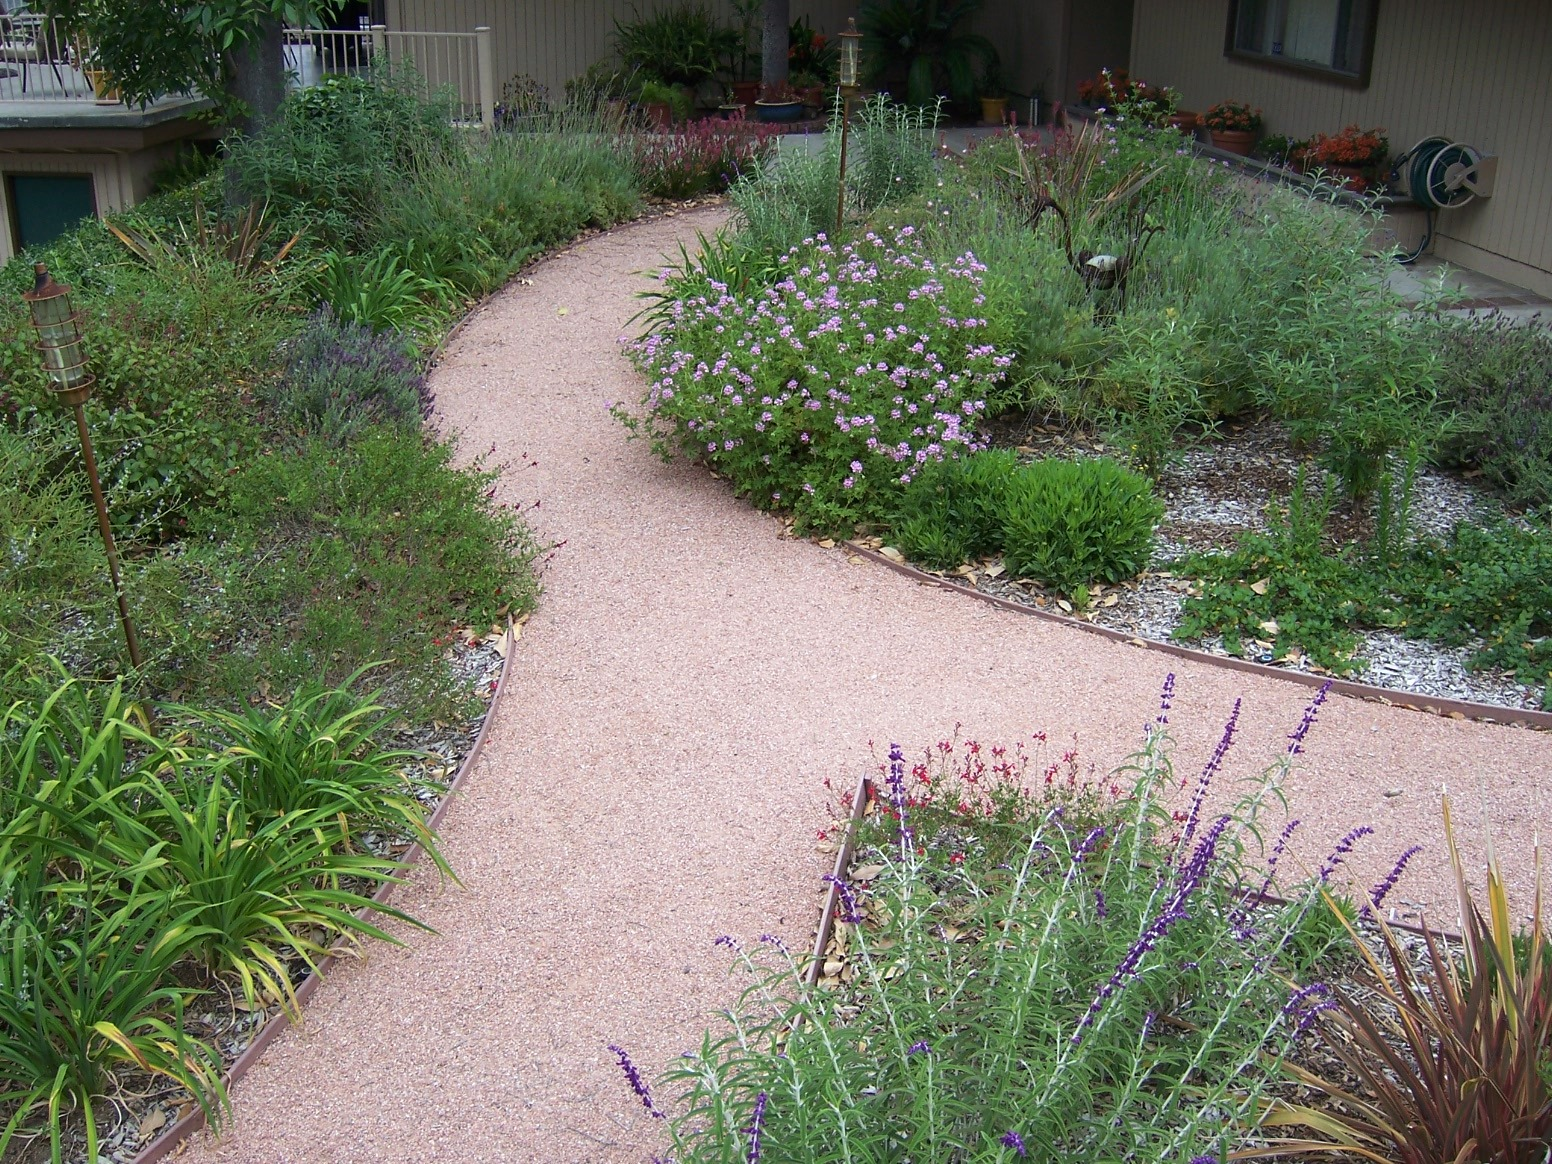 The 2 Minute Gardener Photo Decomposed Granite Pathway DG